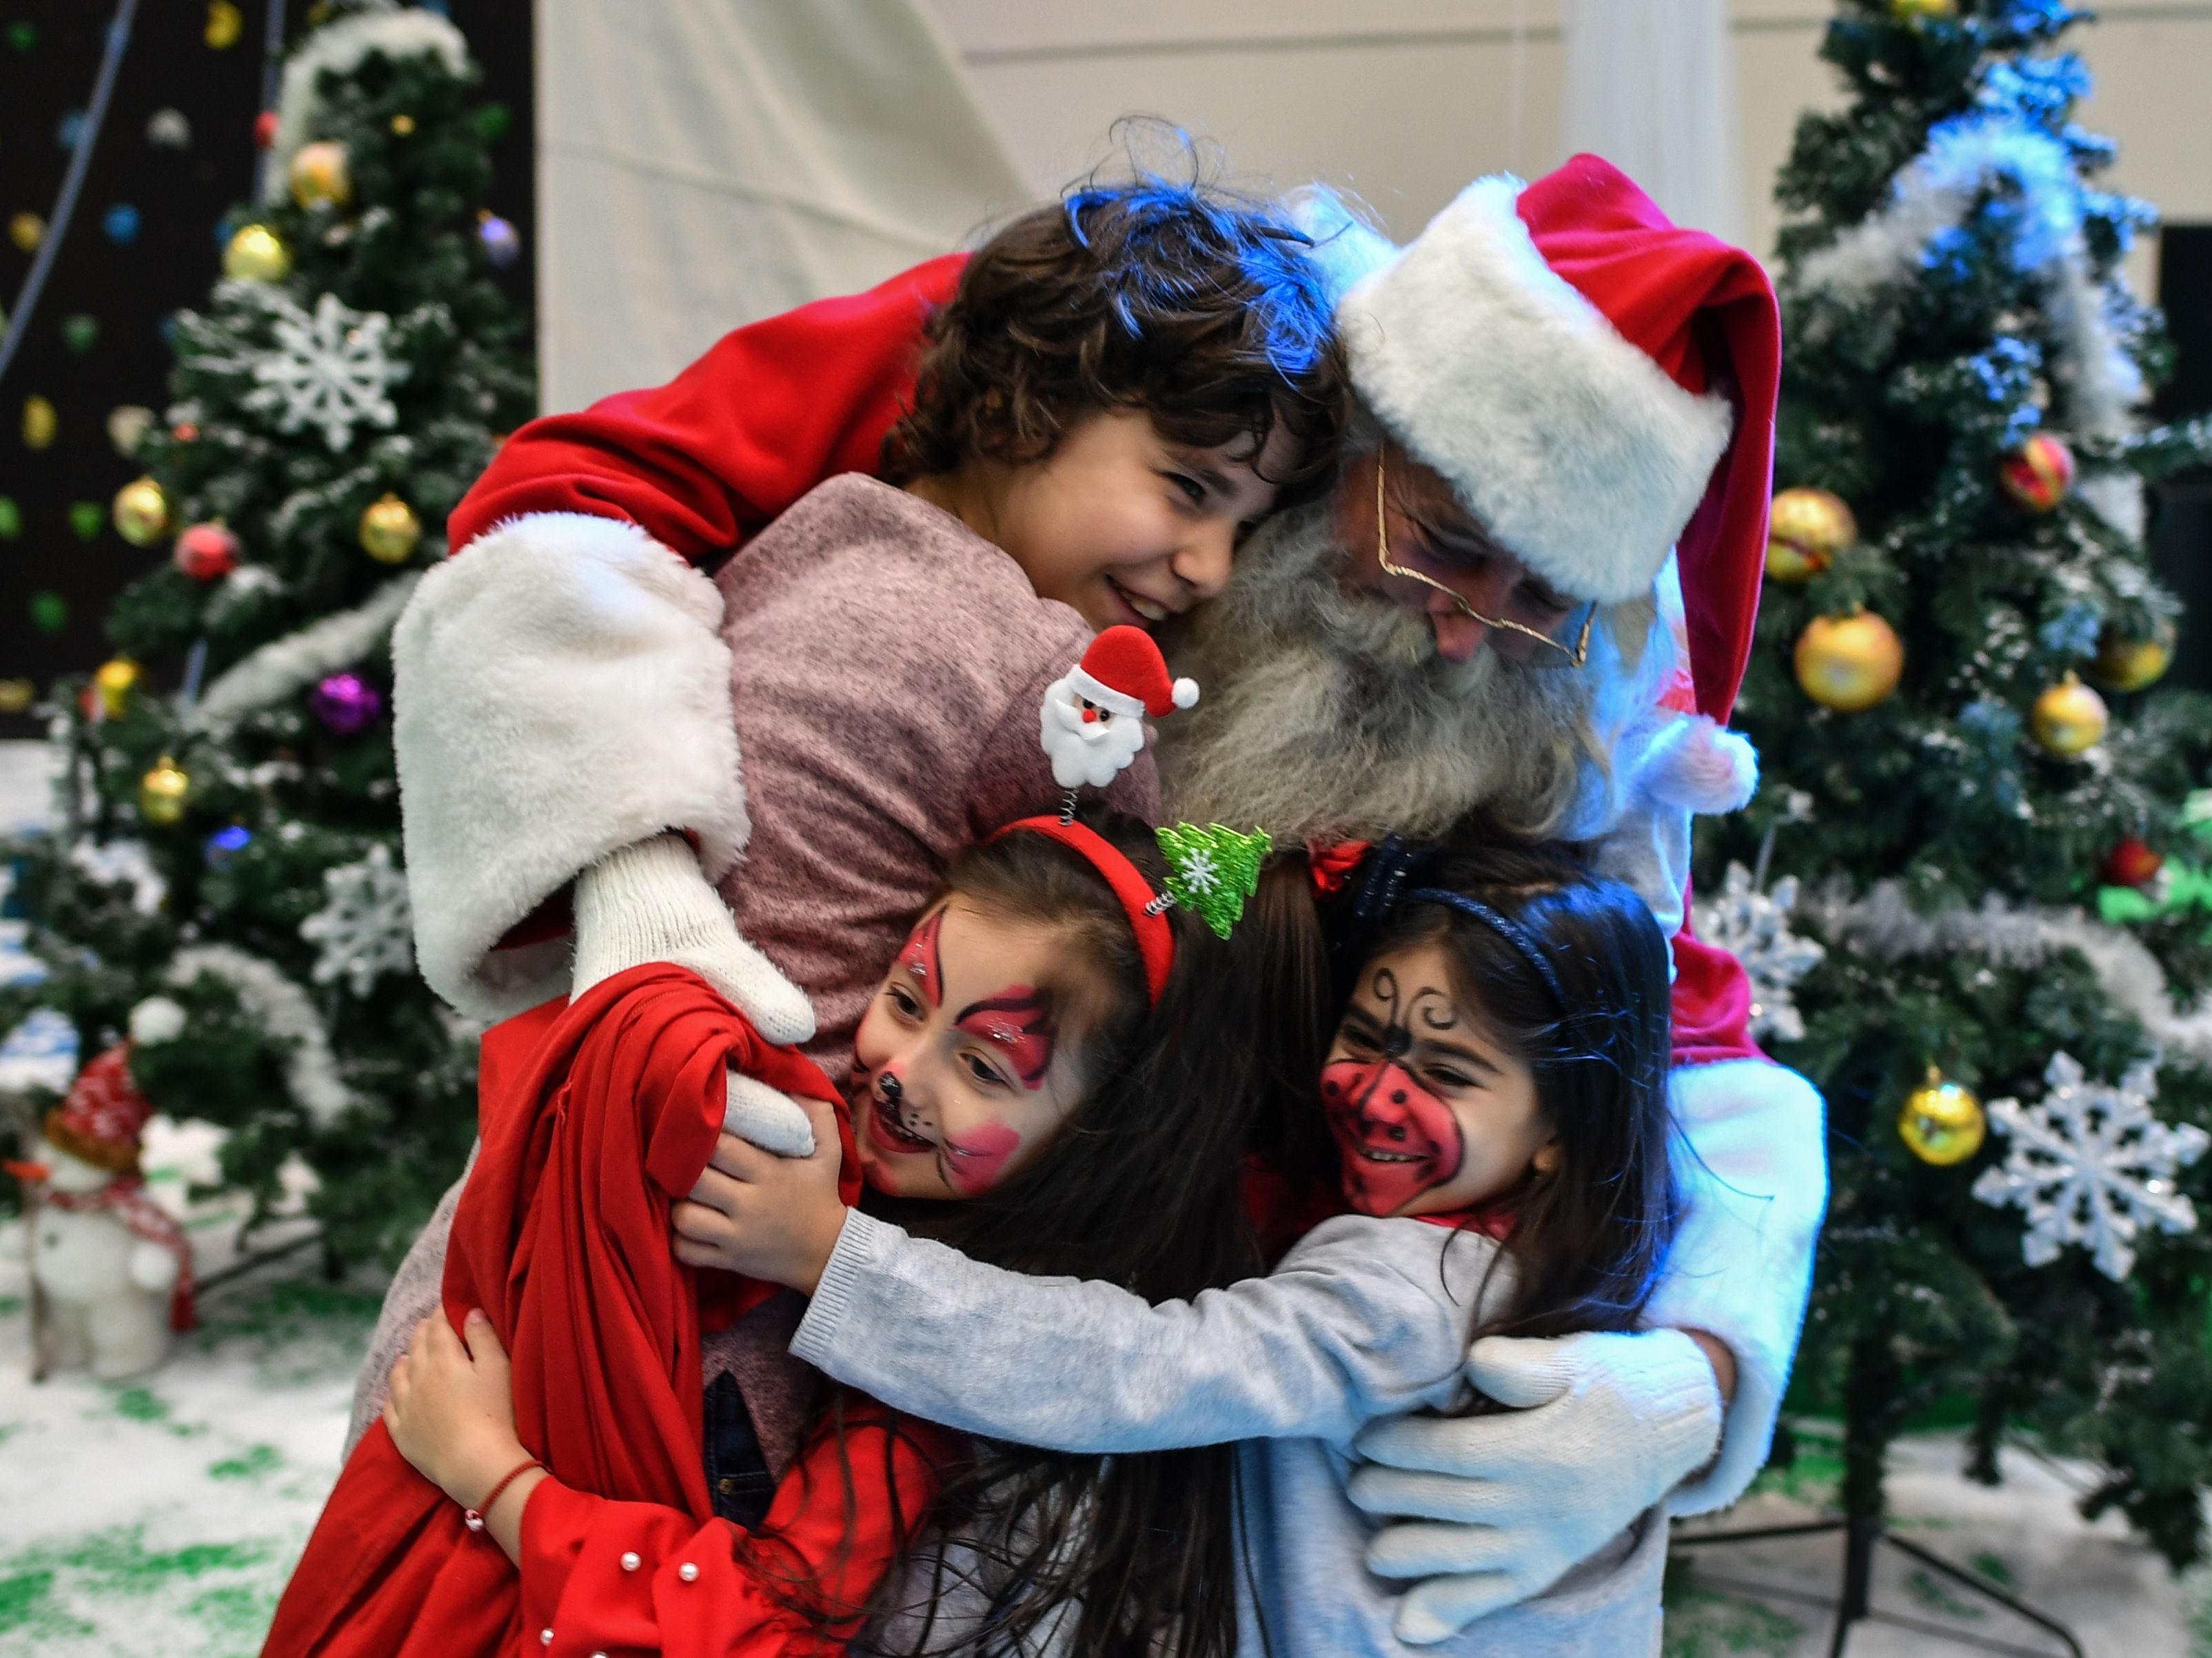 """A man dressed as Santa Claus poses with children during an event organized by the Romanian Ministry of Defense for the children of soldiers killed or injured in military action in Bucharest, Dec. 14, 2018.  During the event titled """"Christmas takes place in the great family of the Romanian Armed Forces"""", children receive gifts chosen by Santa with the Charity Association of the Romanian Army """"Camarazii"""" (""""The Brothers in Arms"""")."""